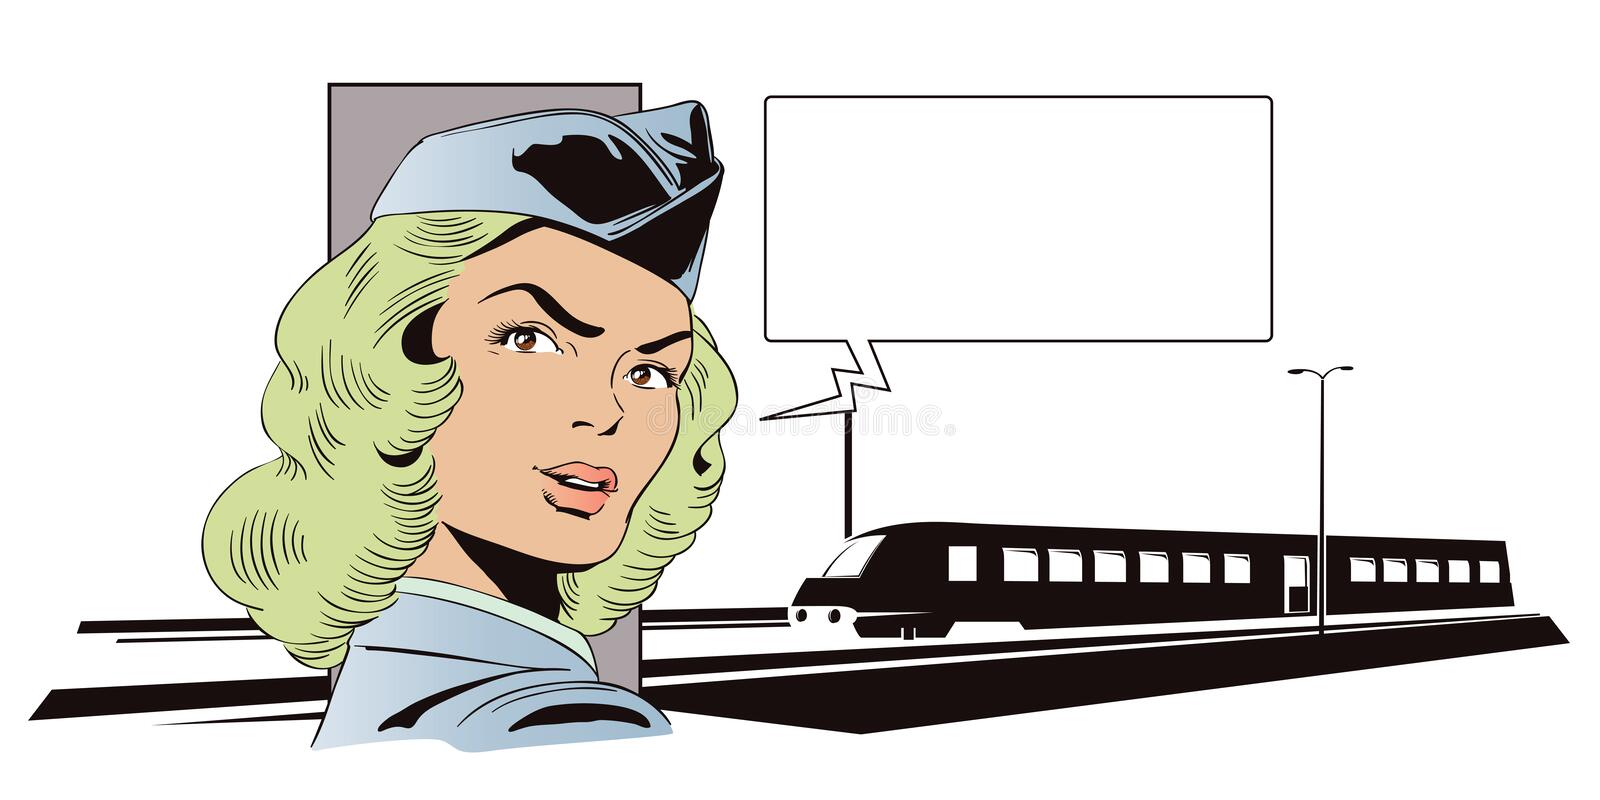 Girl in uniform of train conductor. People in retro style. royalty free illustration